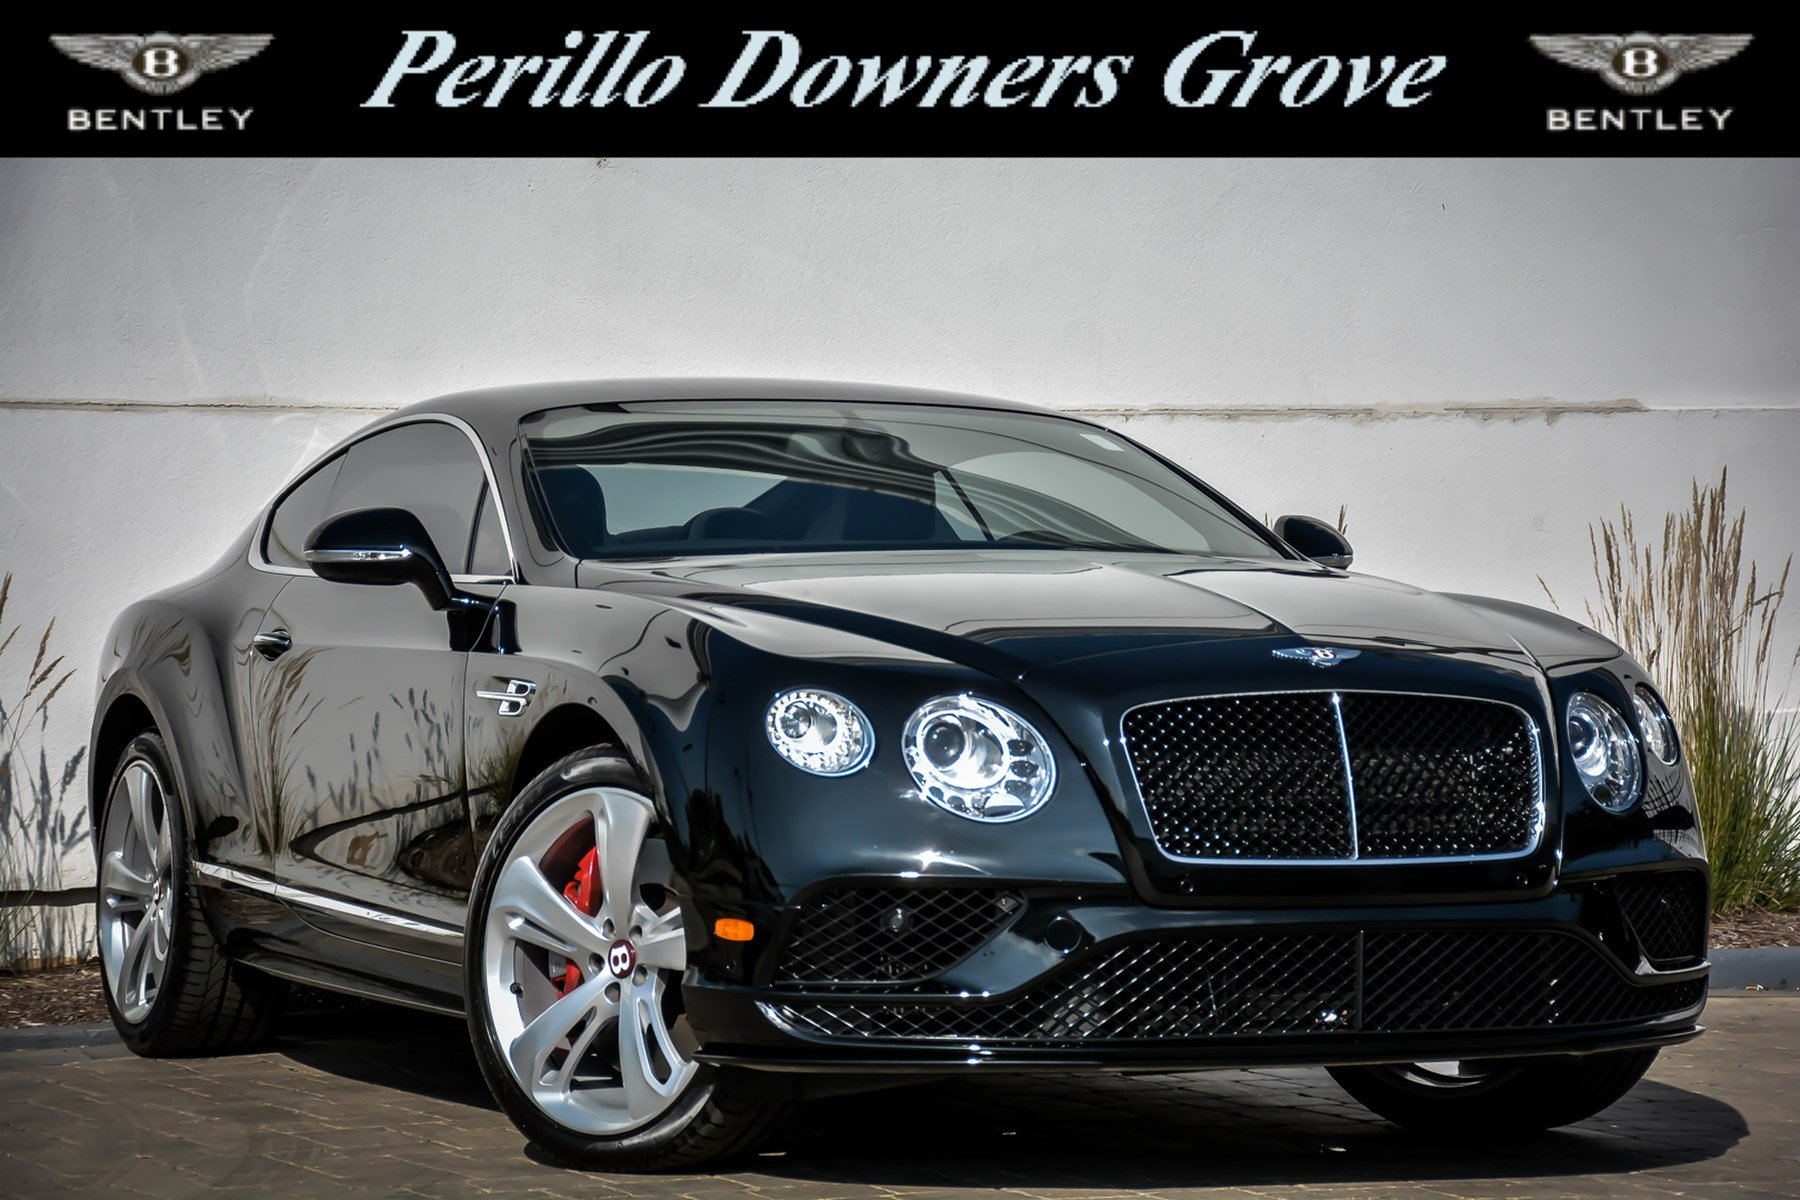 Pre Owned 2017 Bentley Continental GT V8 S 2dr Car in Downers Grove